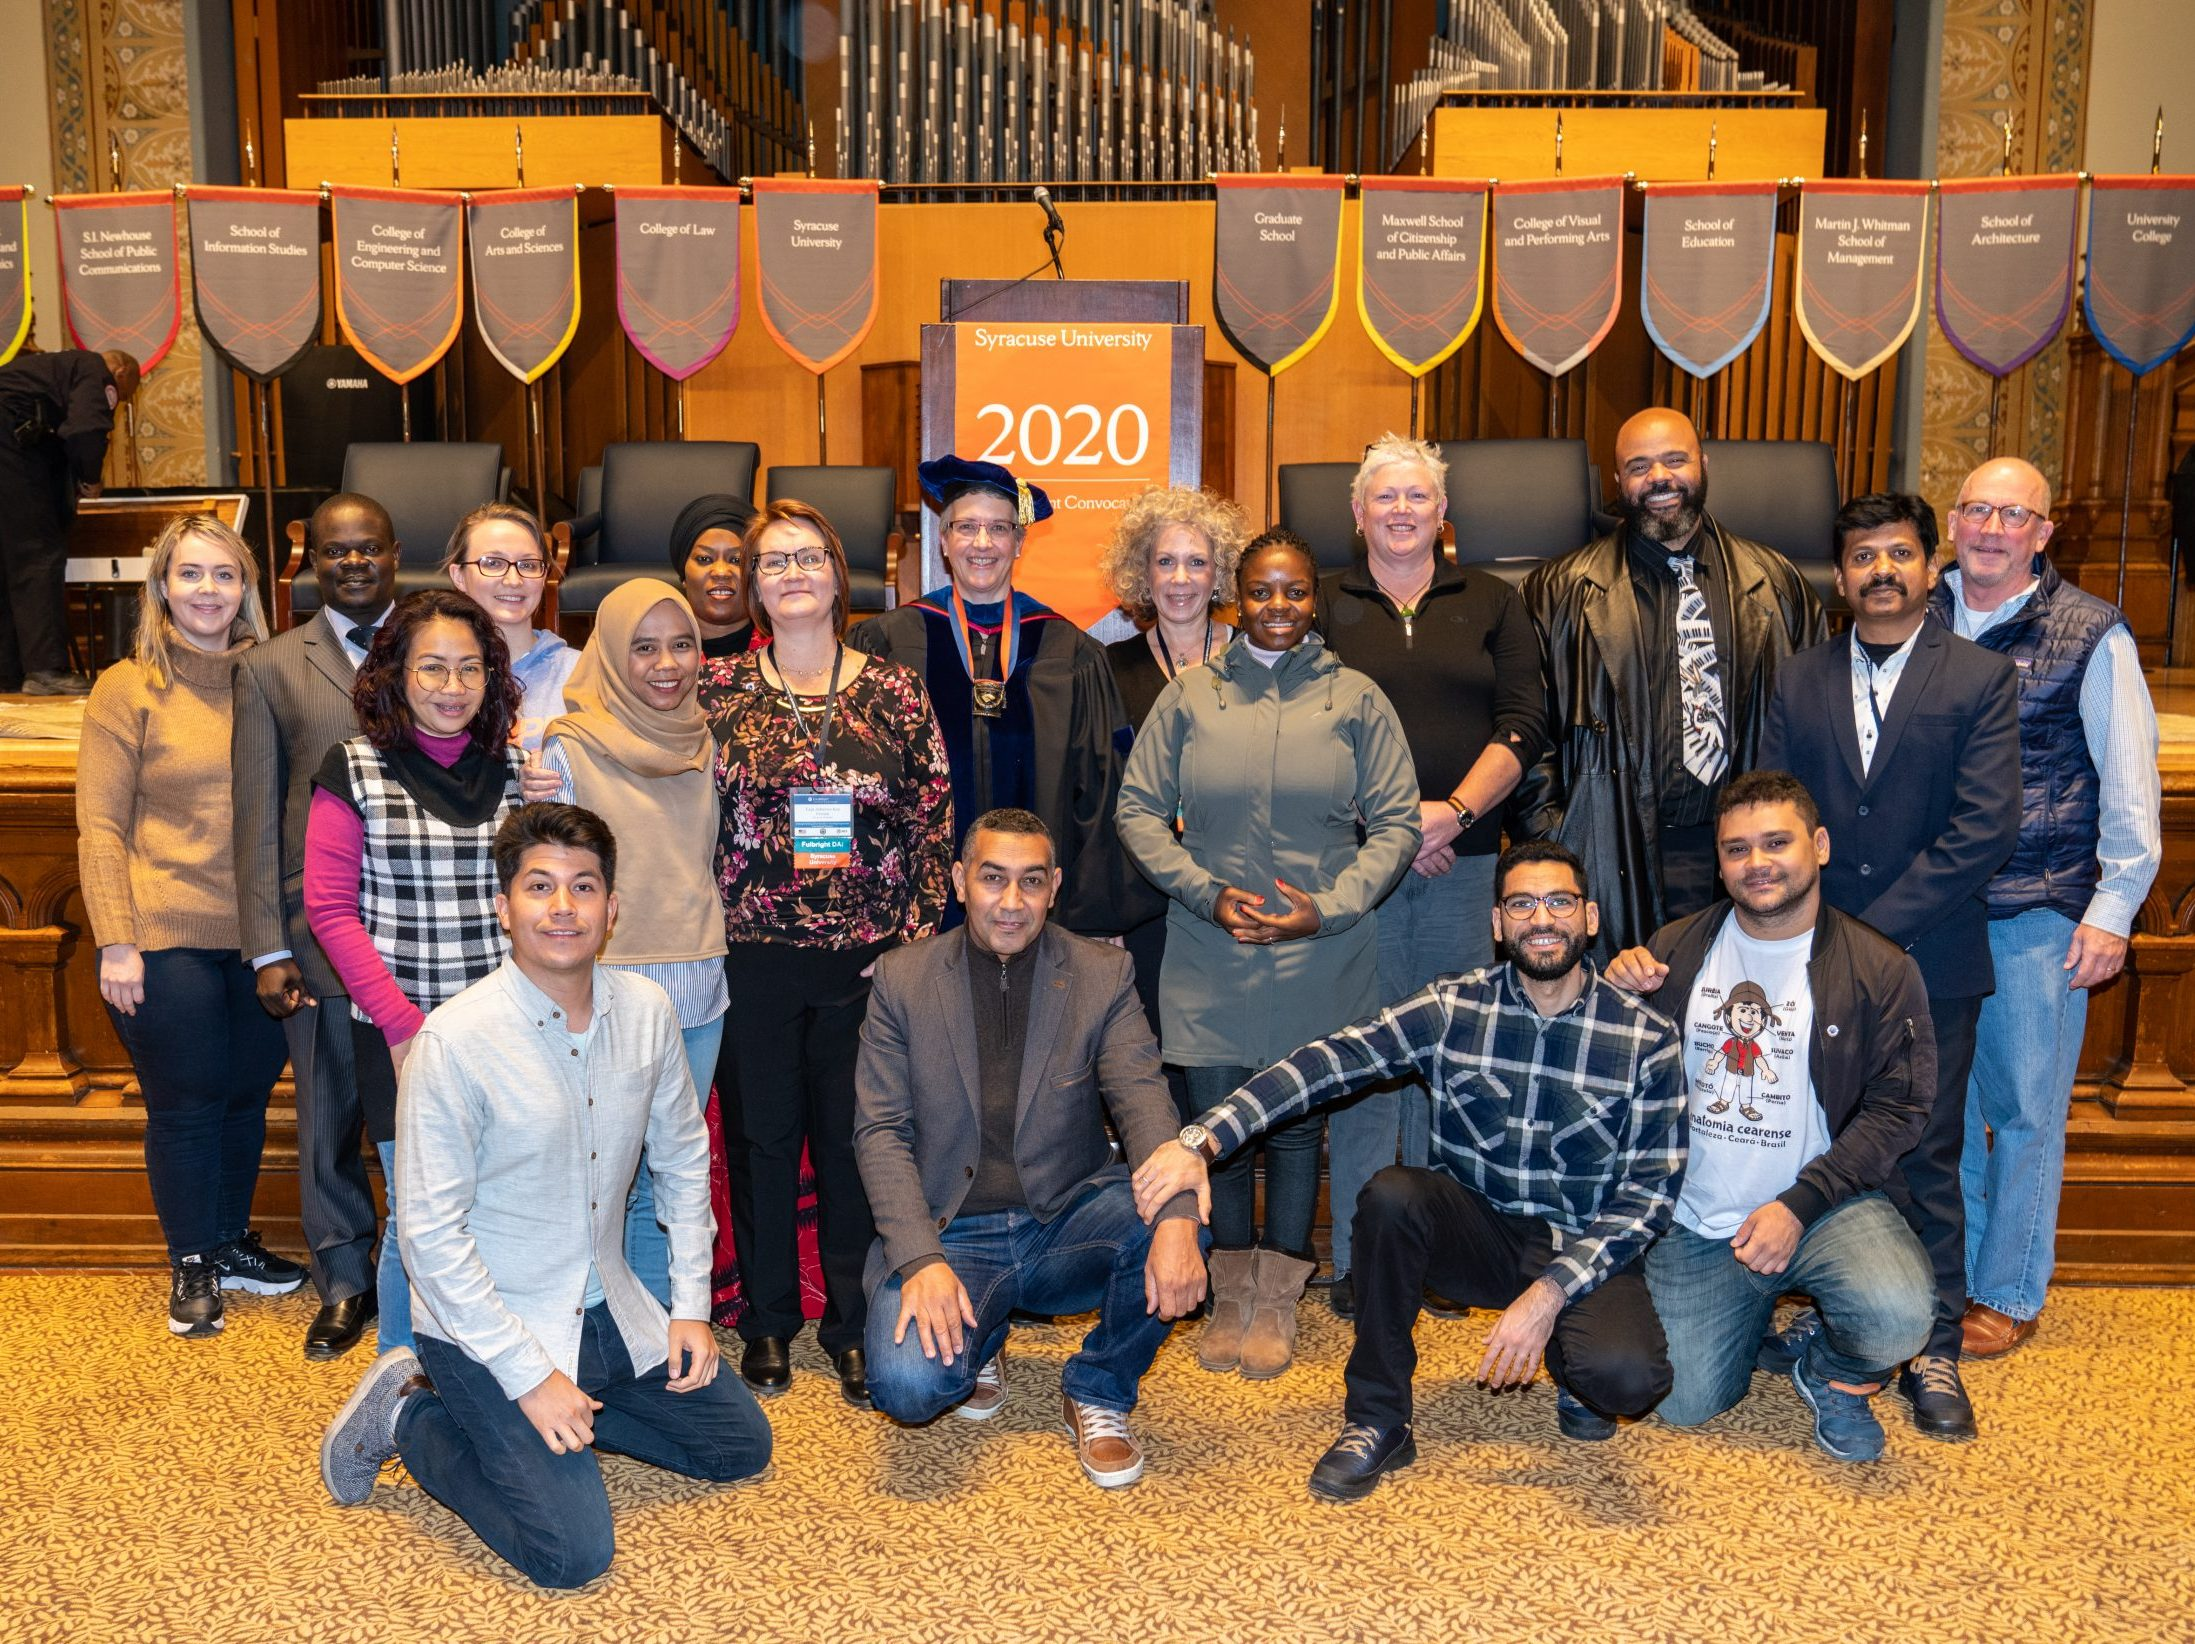 2020 Fulbright scholars at 2020 Winter Welcome